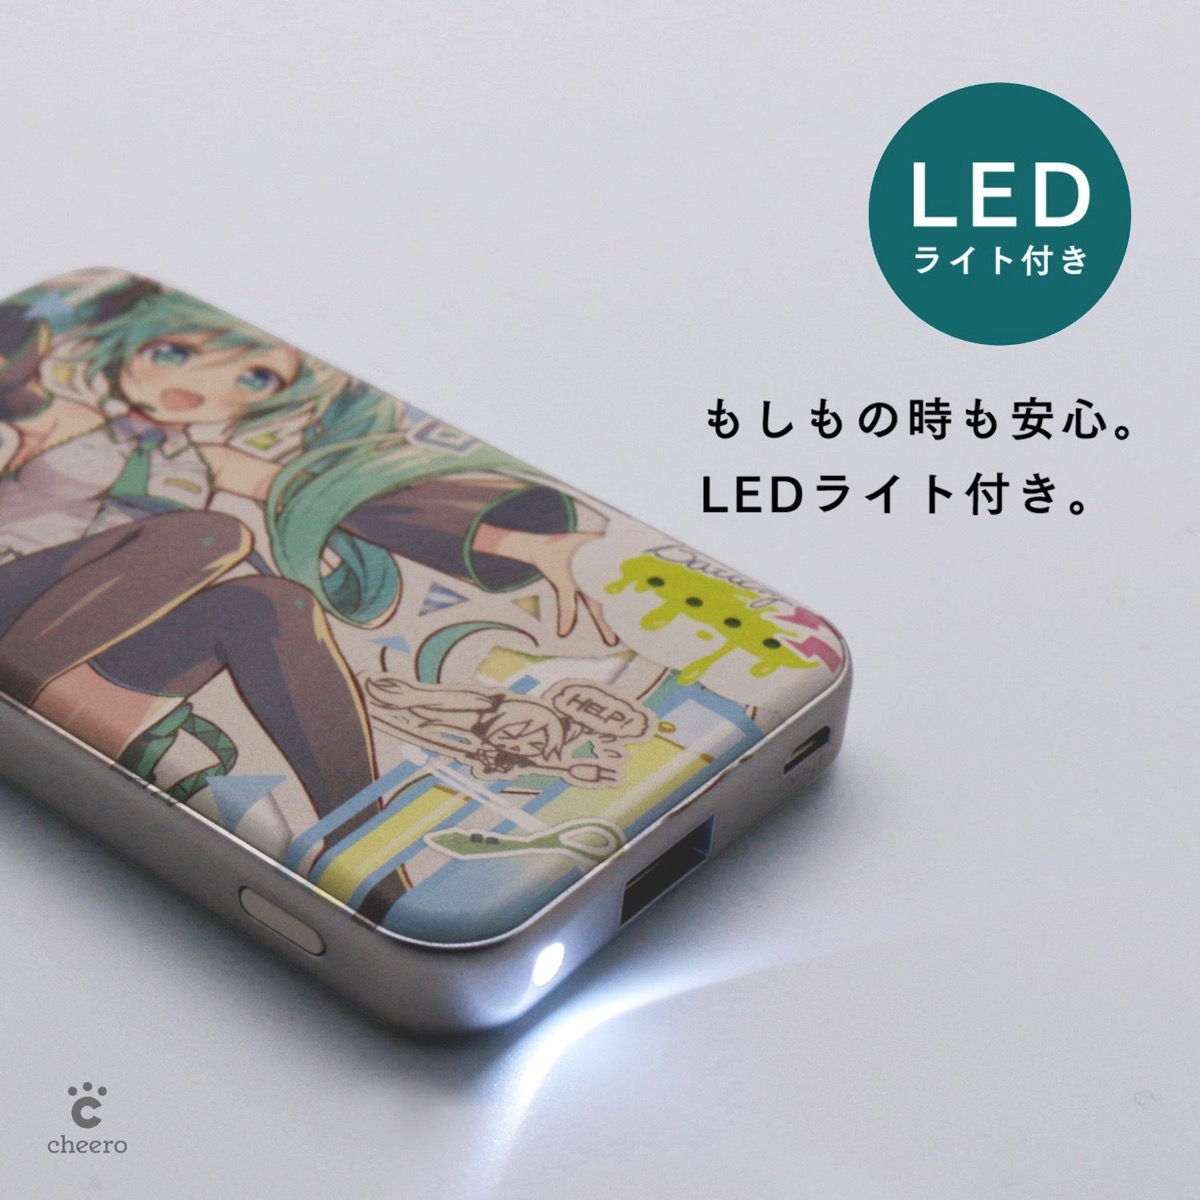 Cheero energy plus mini 4400mah hatsune miku version 00004